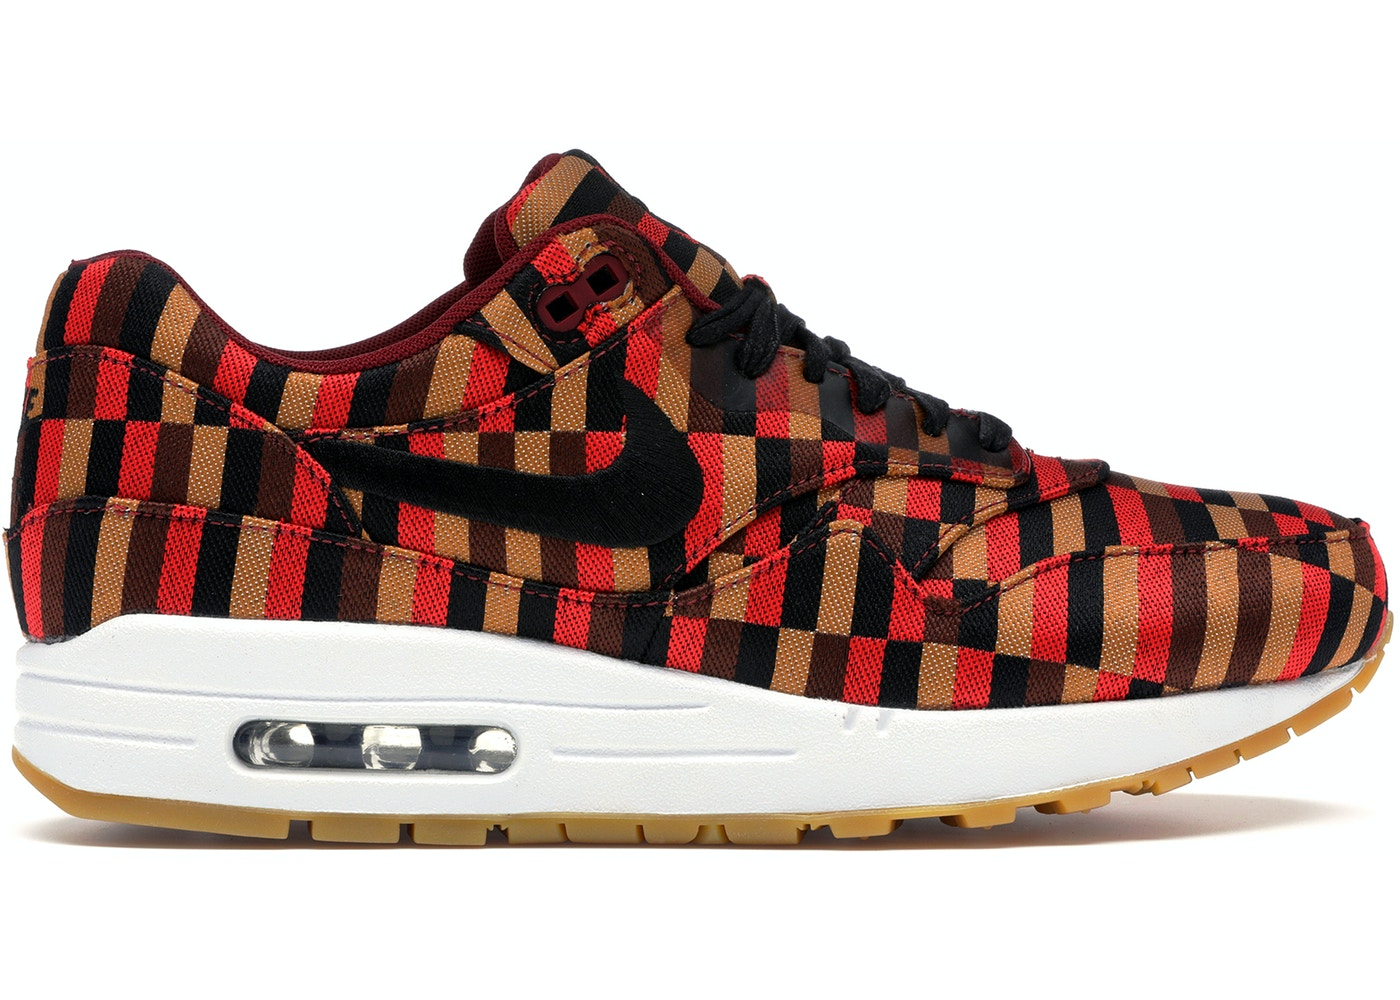 Nike Air Max 1 London Underground Roundel 651321 106